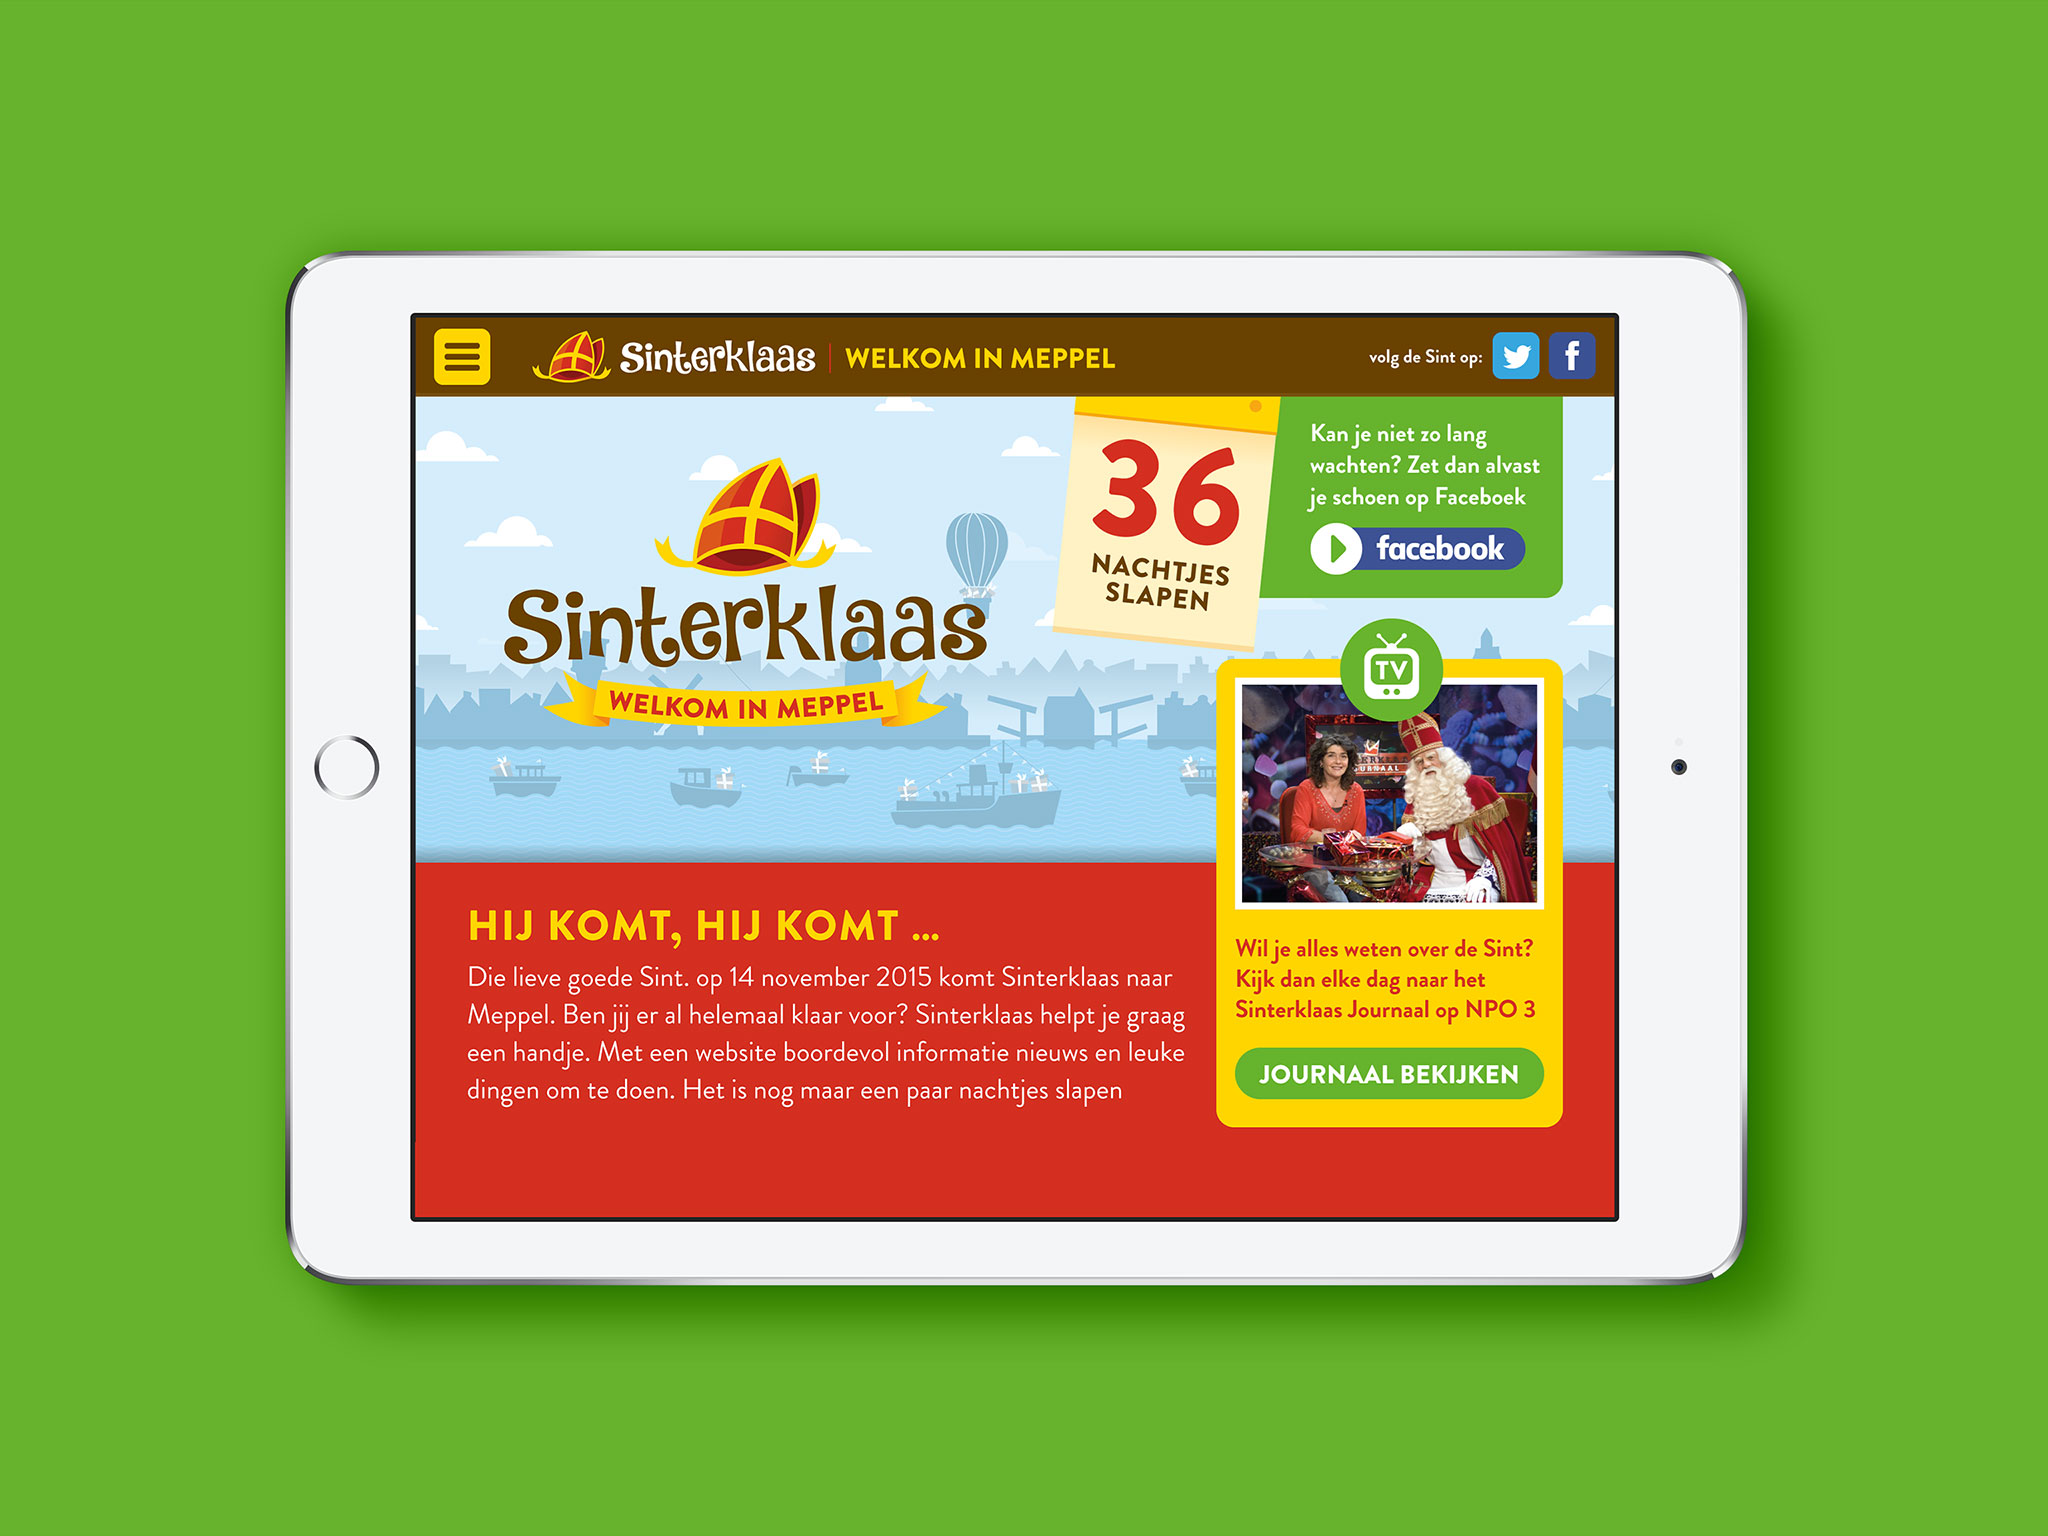 INTOCHT_SINTERKLAAS_WEBSITE_HOMEPAGE